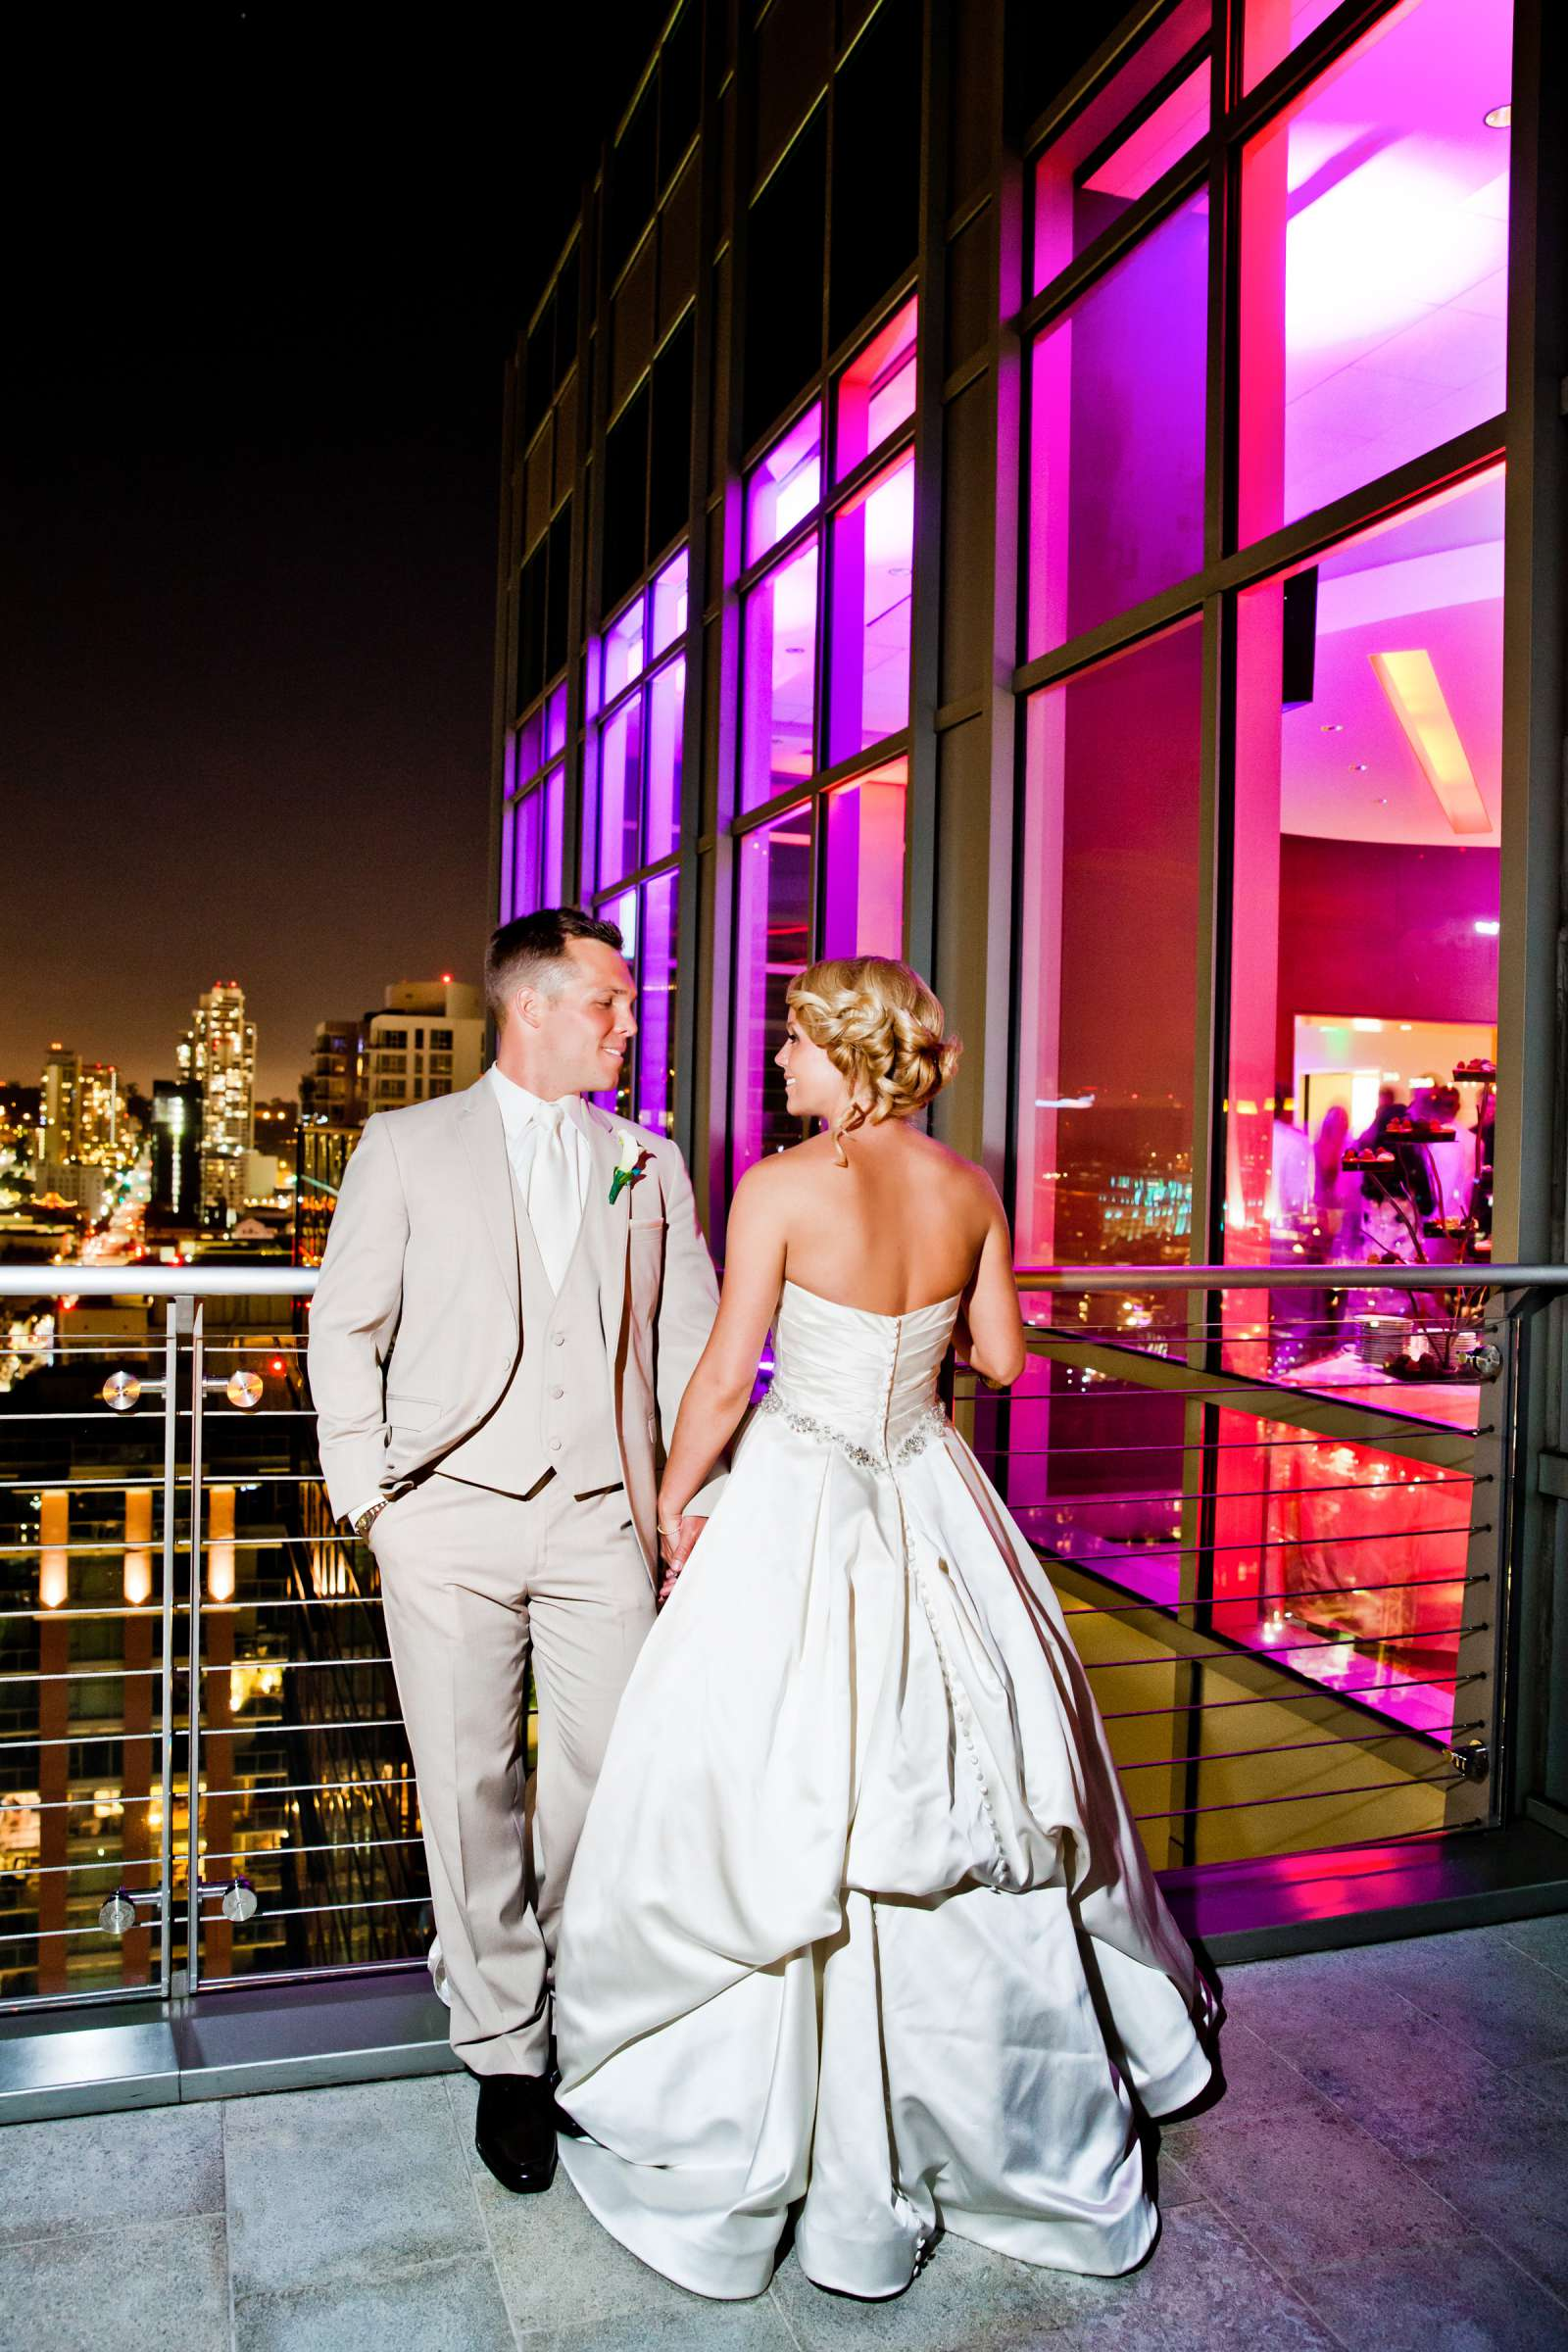 Ultimate Skybox Wedding, Kelly and Daniel Wedding Photo #8 by True Photography